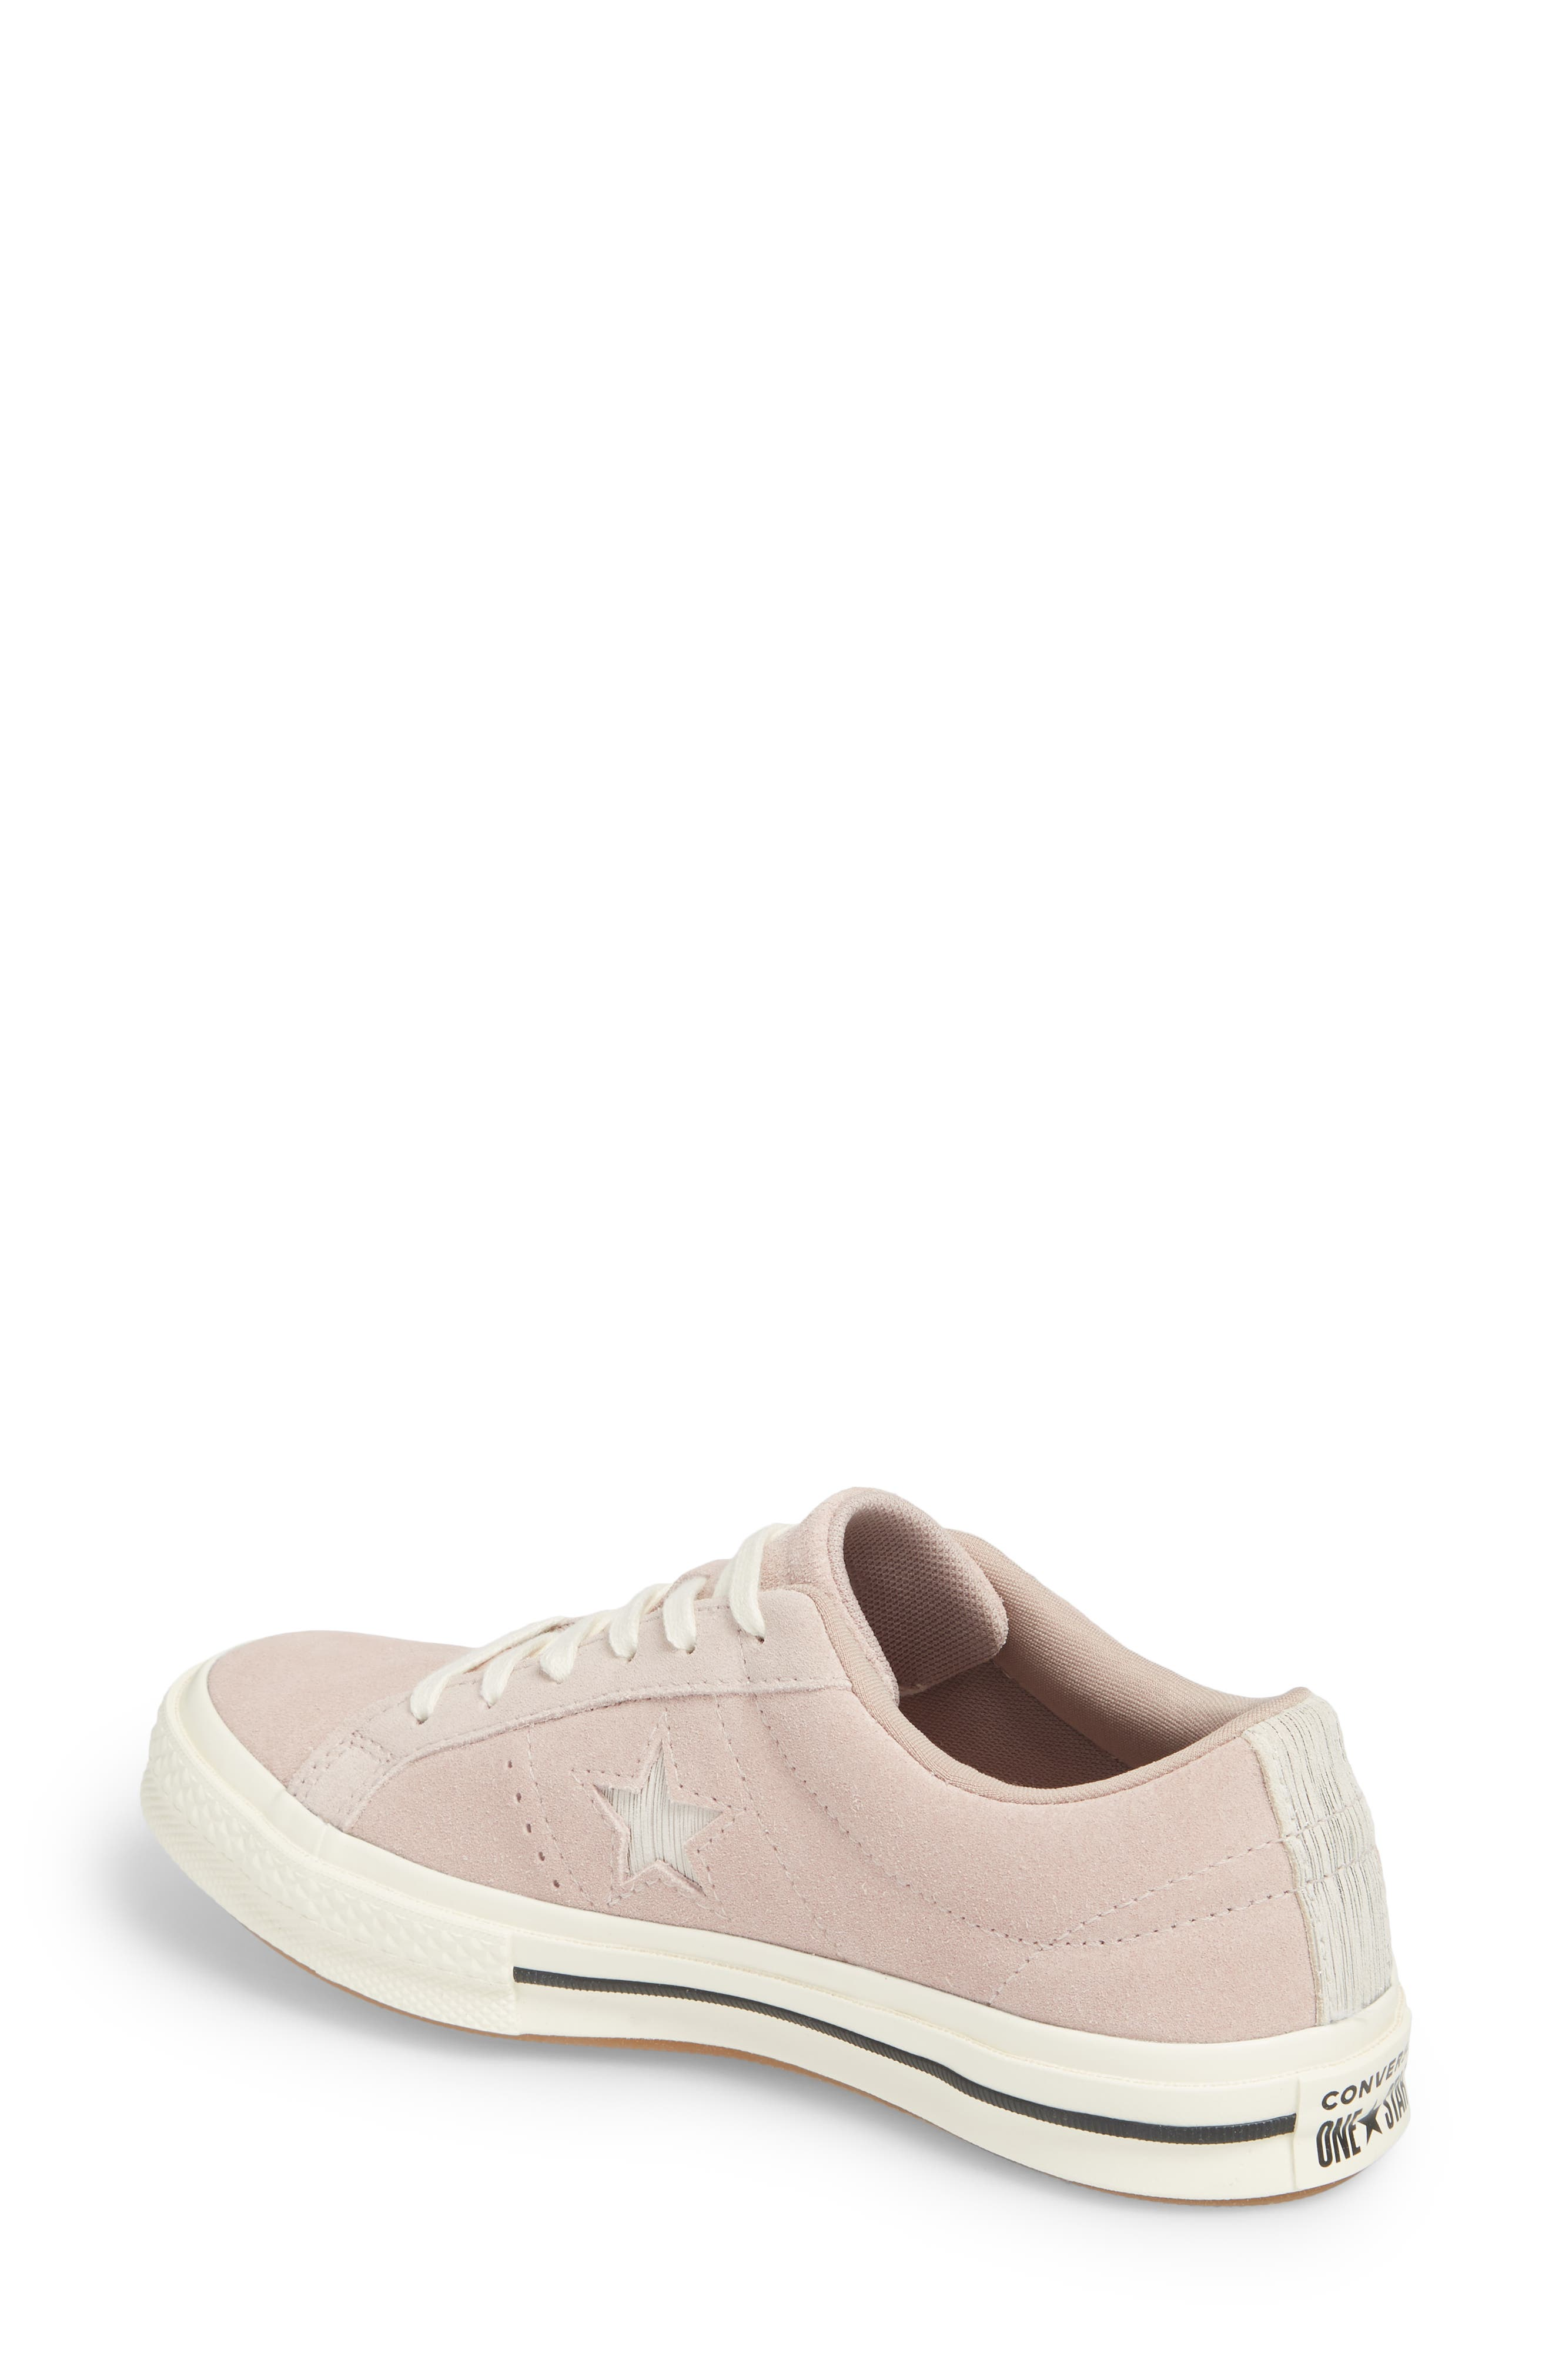 One Star Suede Low Top Sneaker,                             Alternate thumbnail 6, color,